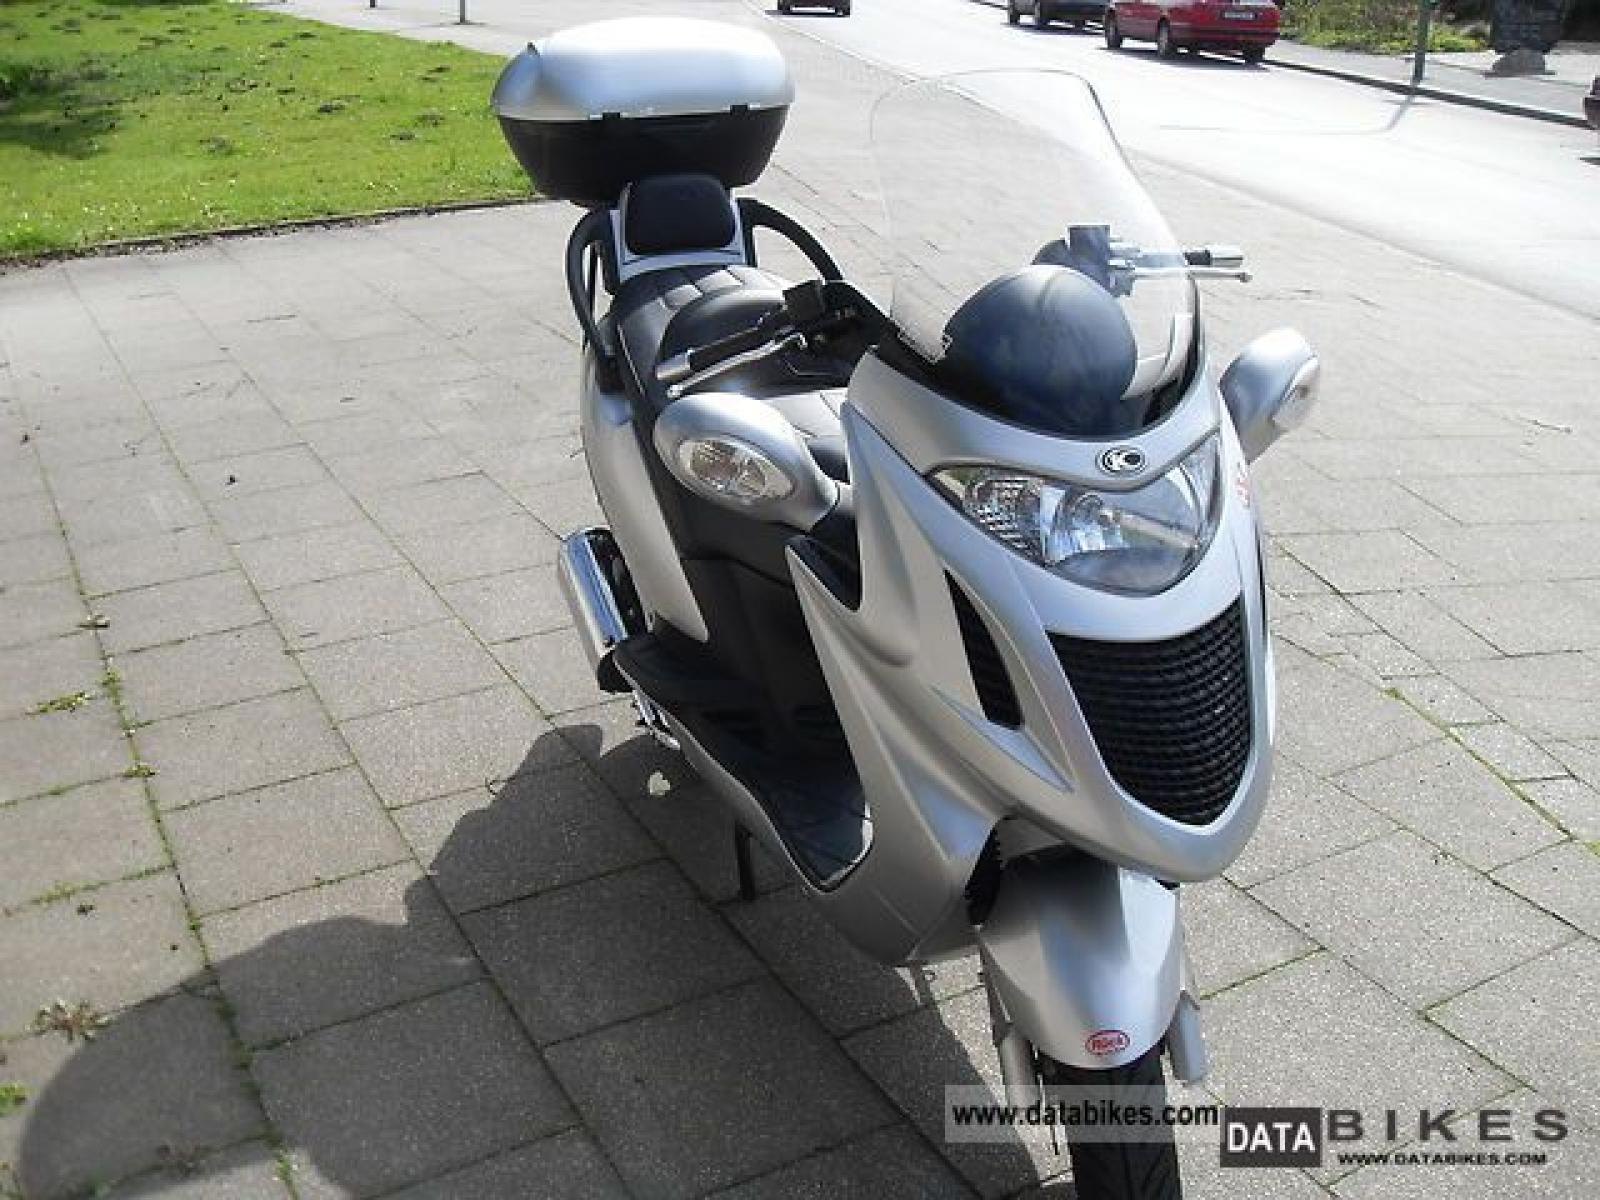 Kymco Hipster 150 images #156548